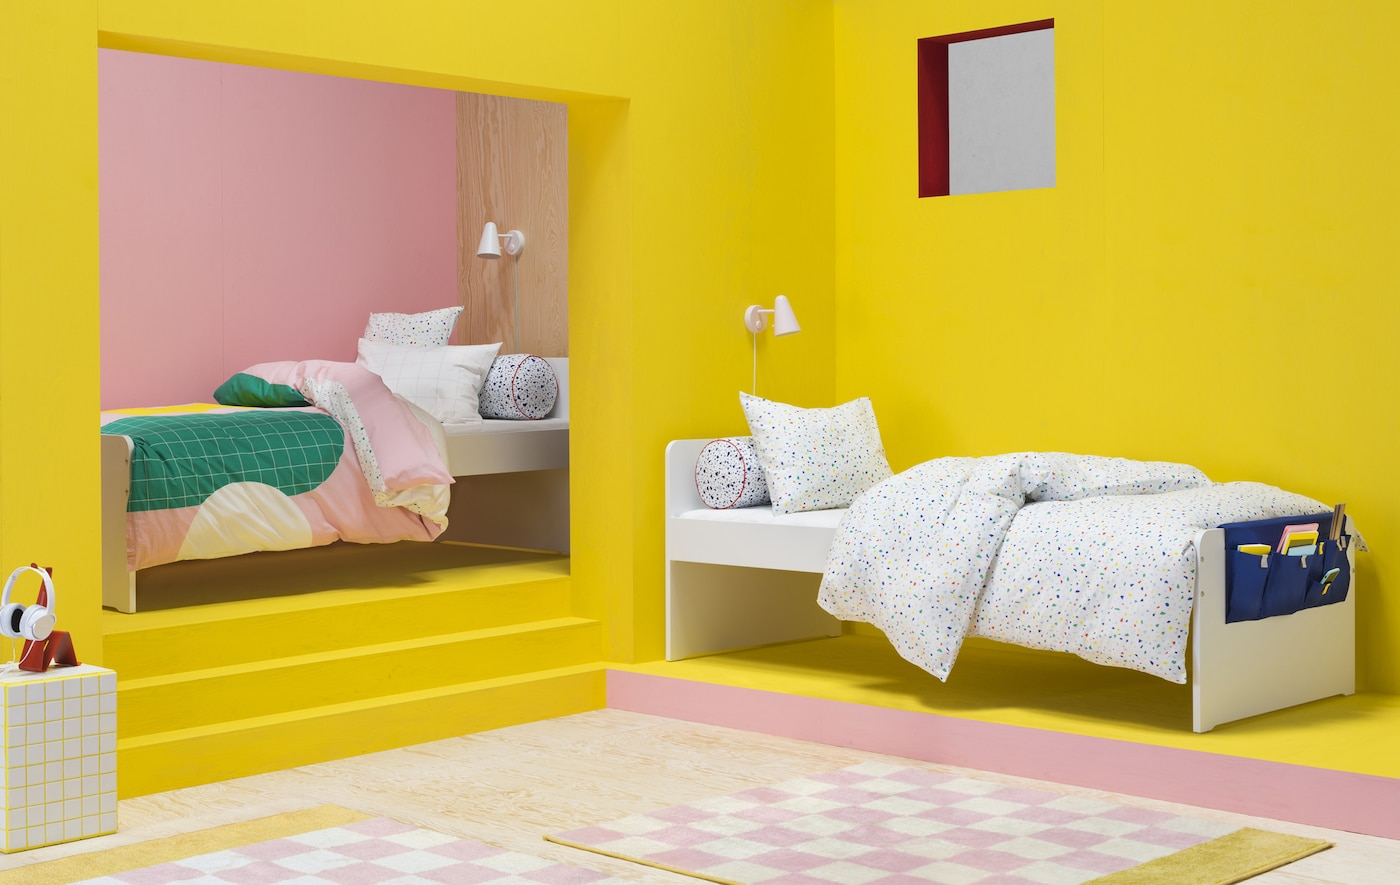 A bright pink and yellow bedroom with two single beds with colorful, graphic bedcovers.